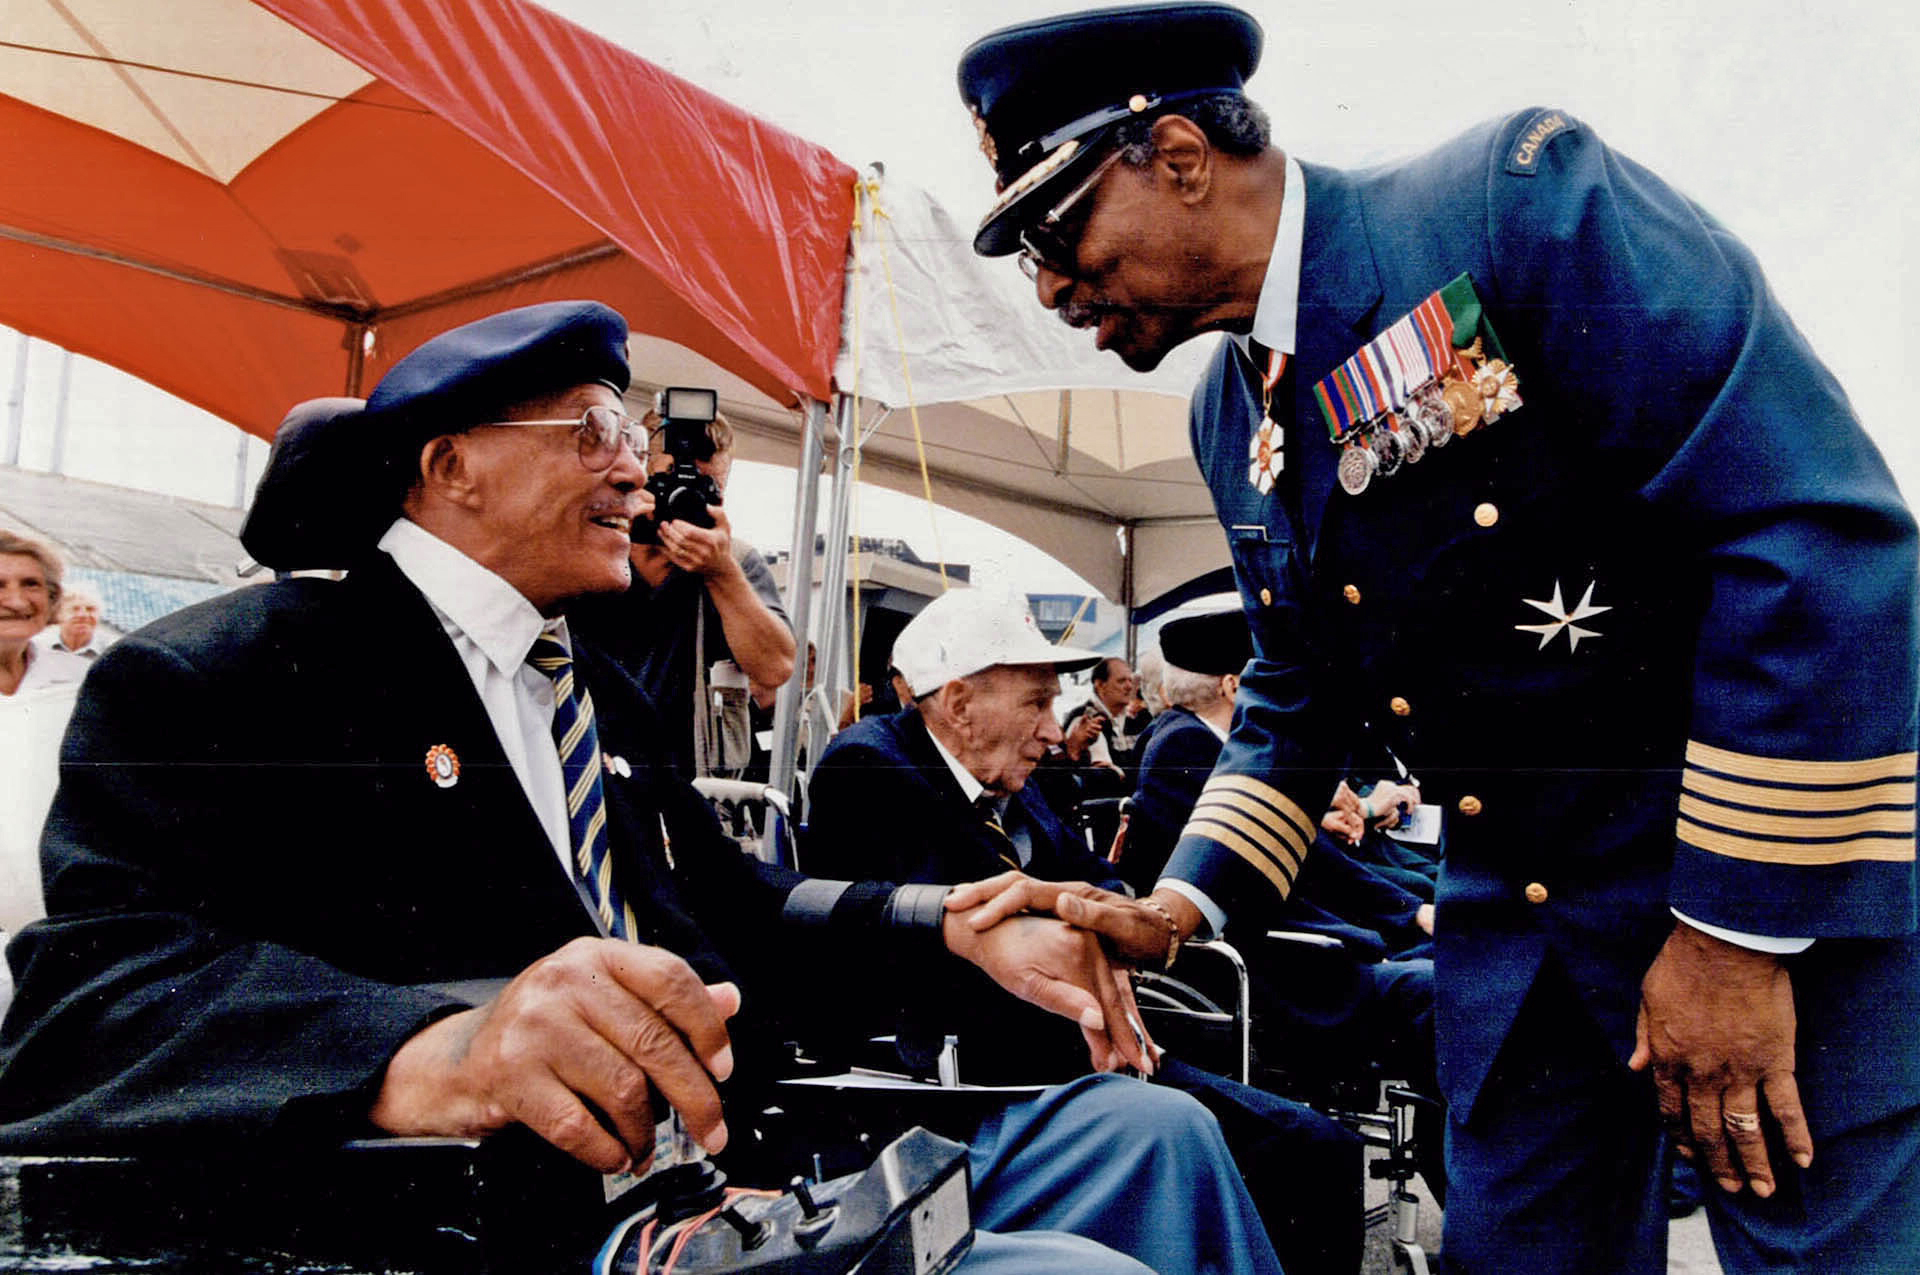 Lieutenant Governor Lincoln Alexander, wearing the uniform of an honorary colonel of the Air Force, speaks with a veteran. PHOTO: Toronto Star Archives